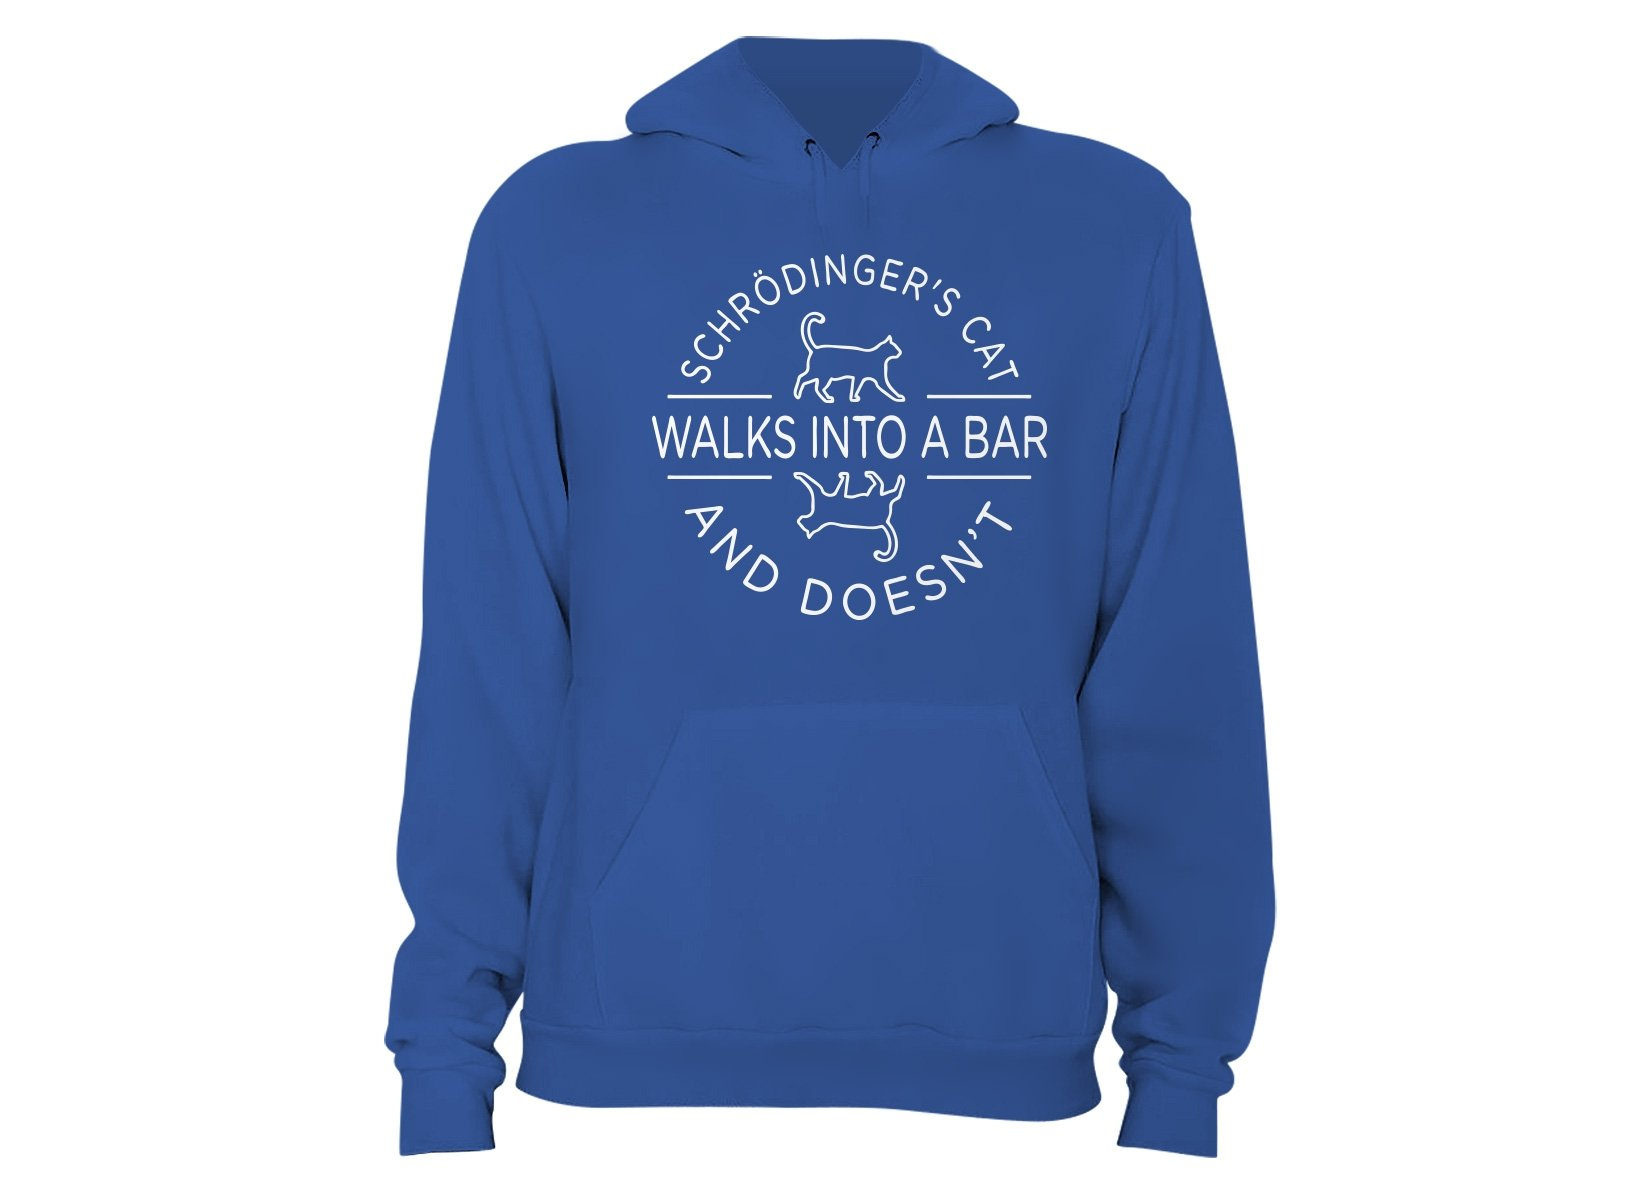 Schrodinger's Cat Walks Into A Bar on Hoodie